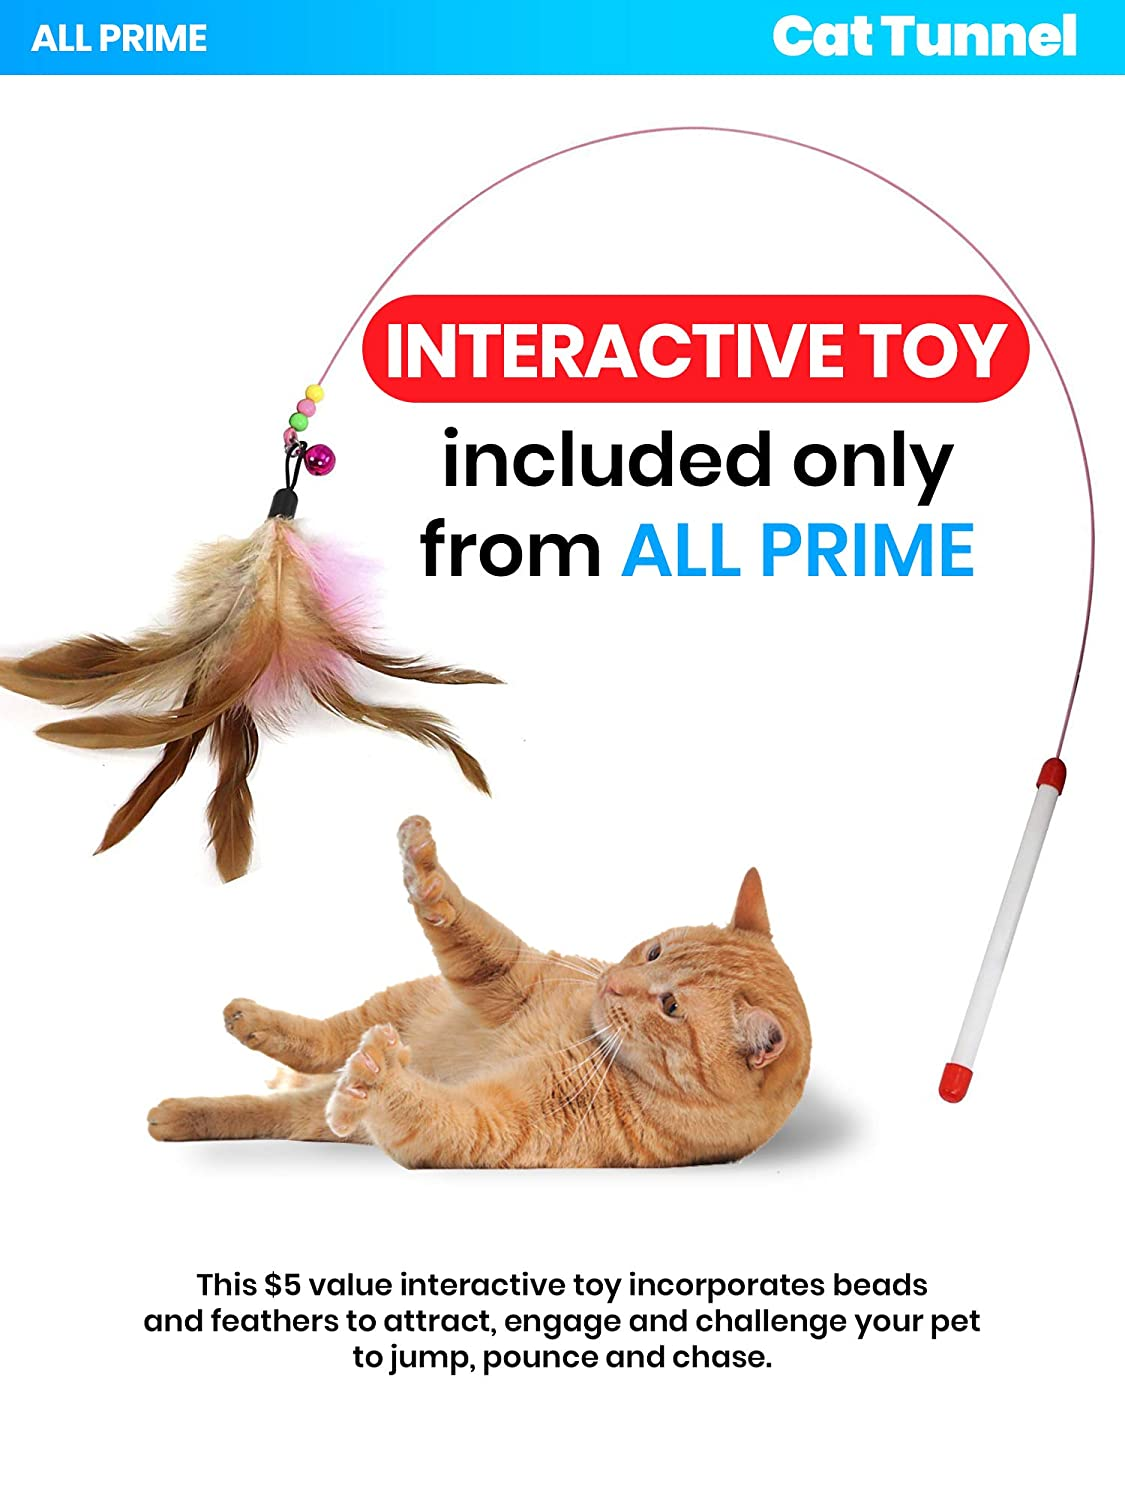 Cat Tunnels for Indoor Cats Also Included is a Free Interactive Cat Toy Cat Tube Great Toy for Cats /& Rabbits All Prime Cat Tunnel Collapsible 3 Way Pet Tunnel Toys for Cats